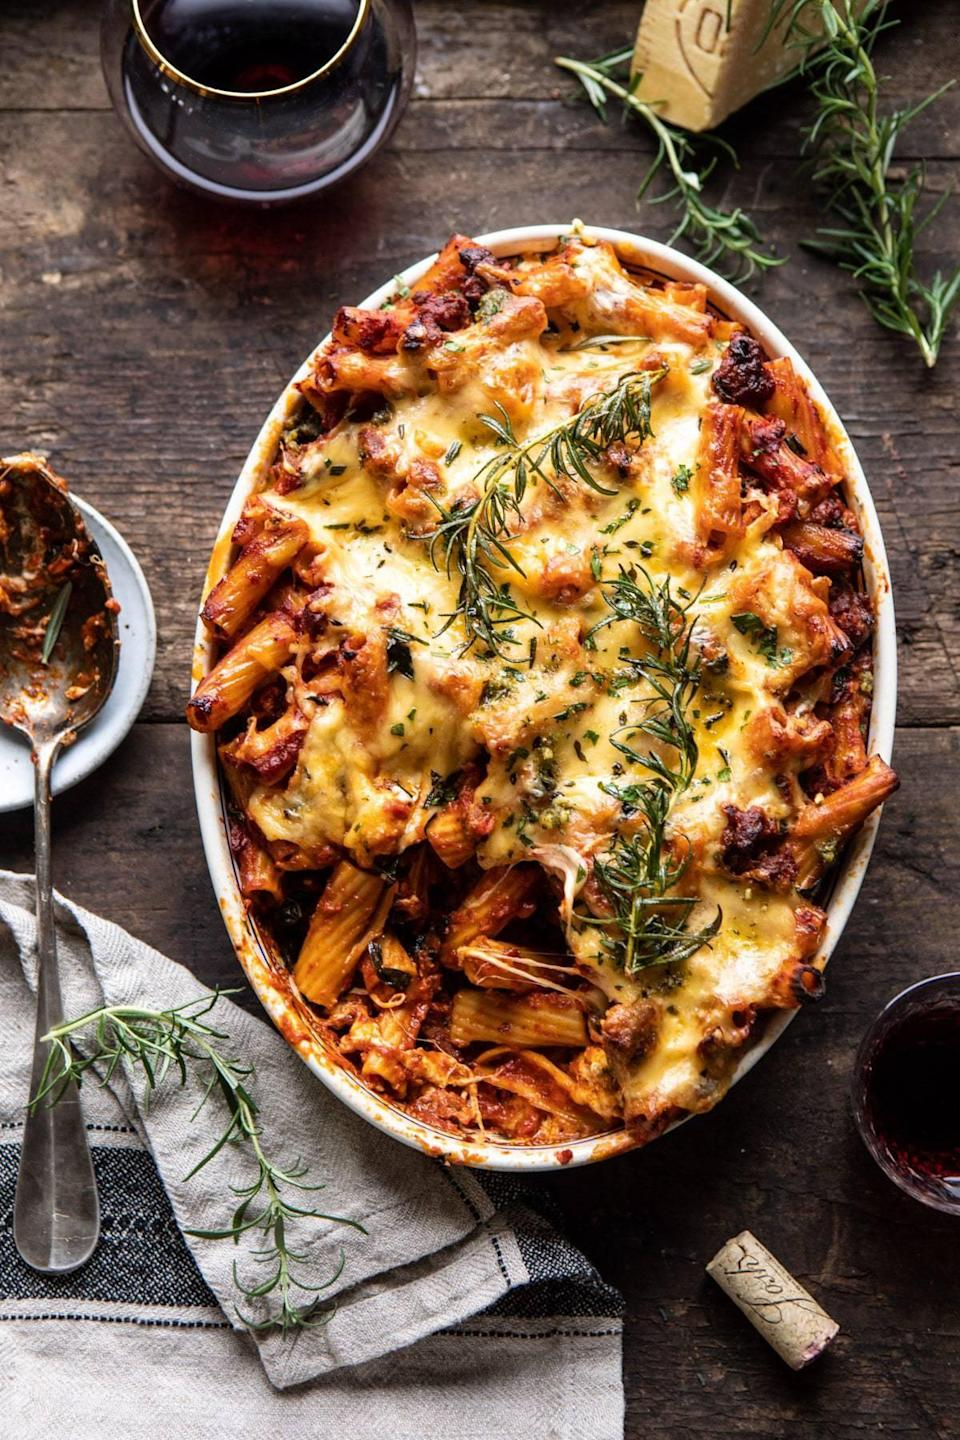 """<p>Step up your dinner when you cook up this drool-worthy rigatoni. Now this recipe is fit to feed eight people, and if you like pasta, we suggest making the full recipe even if it's just two of you because it's <em>that</em> good. With Italian chicken sausage, plenty of cheese, and a zesty pesto sauce, you'll want to nosh on this for days to come.</p> <p><strong>Get the recipe:</strong> <a href=""""https://www.halfbakedharvest.com/one-pot-spicy-pesto-cheese-baked-rigatoni/"""" class=""""link rapid-noclick-resp"""" rel=""""nofollow noopener"""" target=""""_blank"""" data-ylk=""""slk:one-pot spicy pesto cheese baked rigatoni"""">one-pot spicy pesto cheese baked rigatoni</a></p>"""